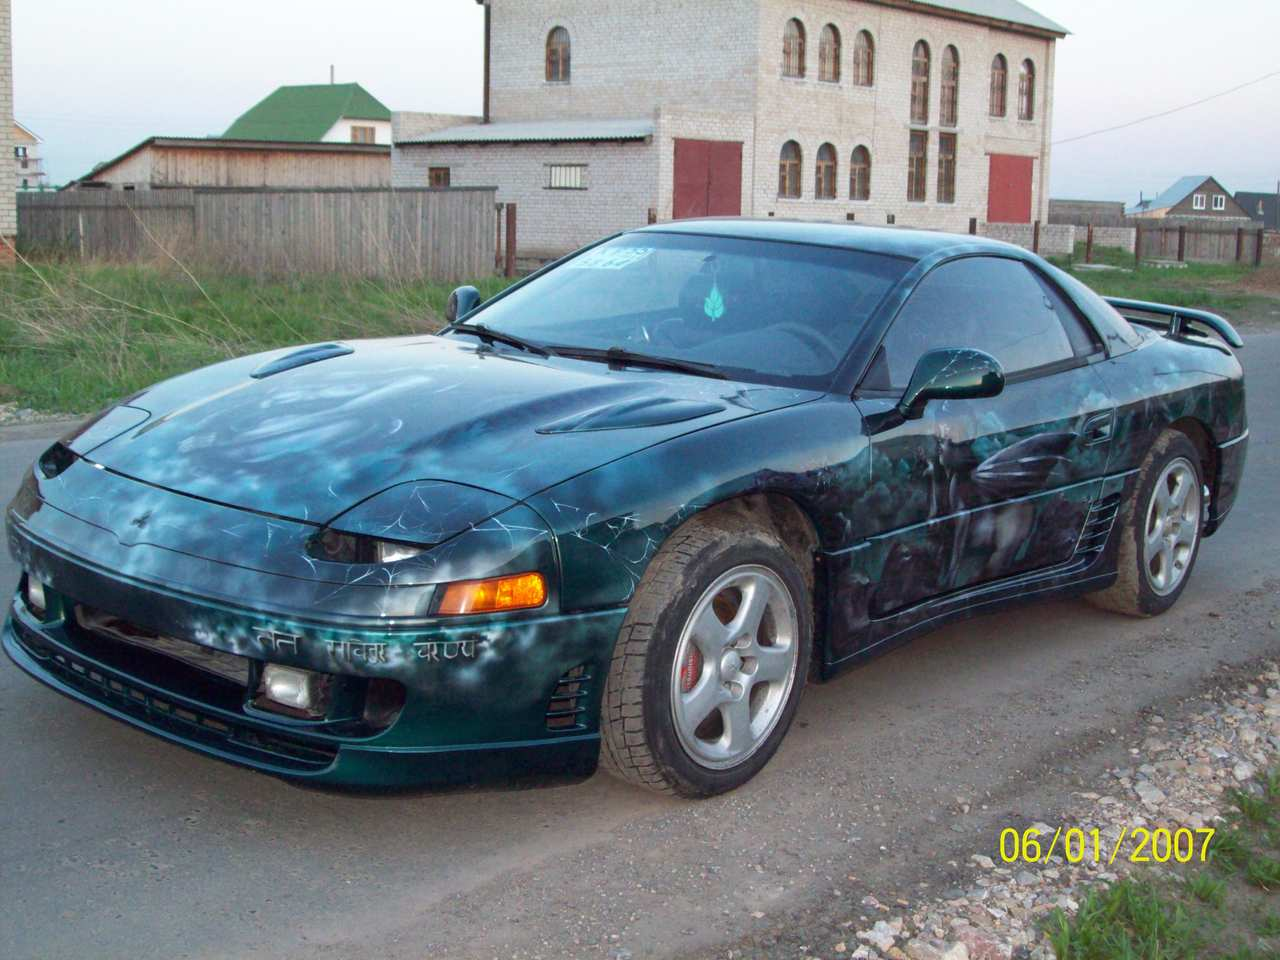 1992 Mitsubishi GTO Wallpapers, 3.0l., Gasoline, Manual For Sale